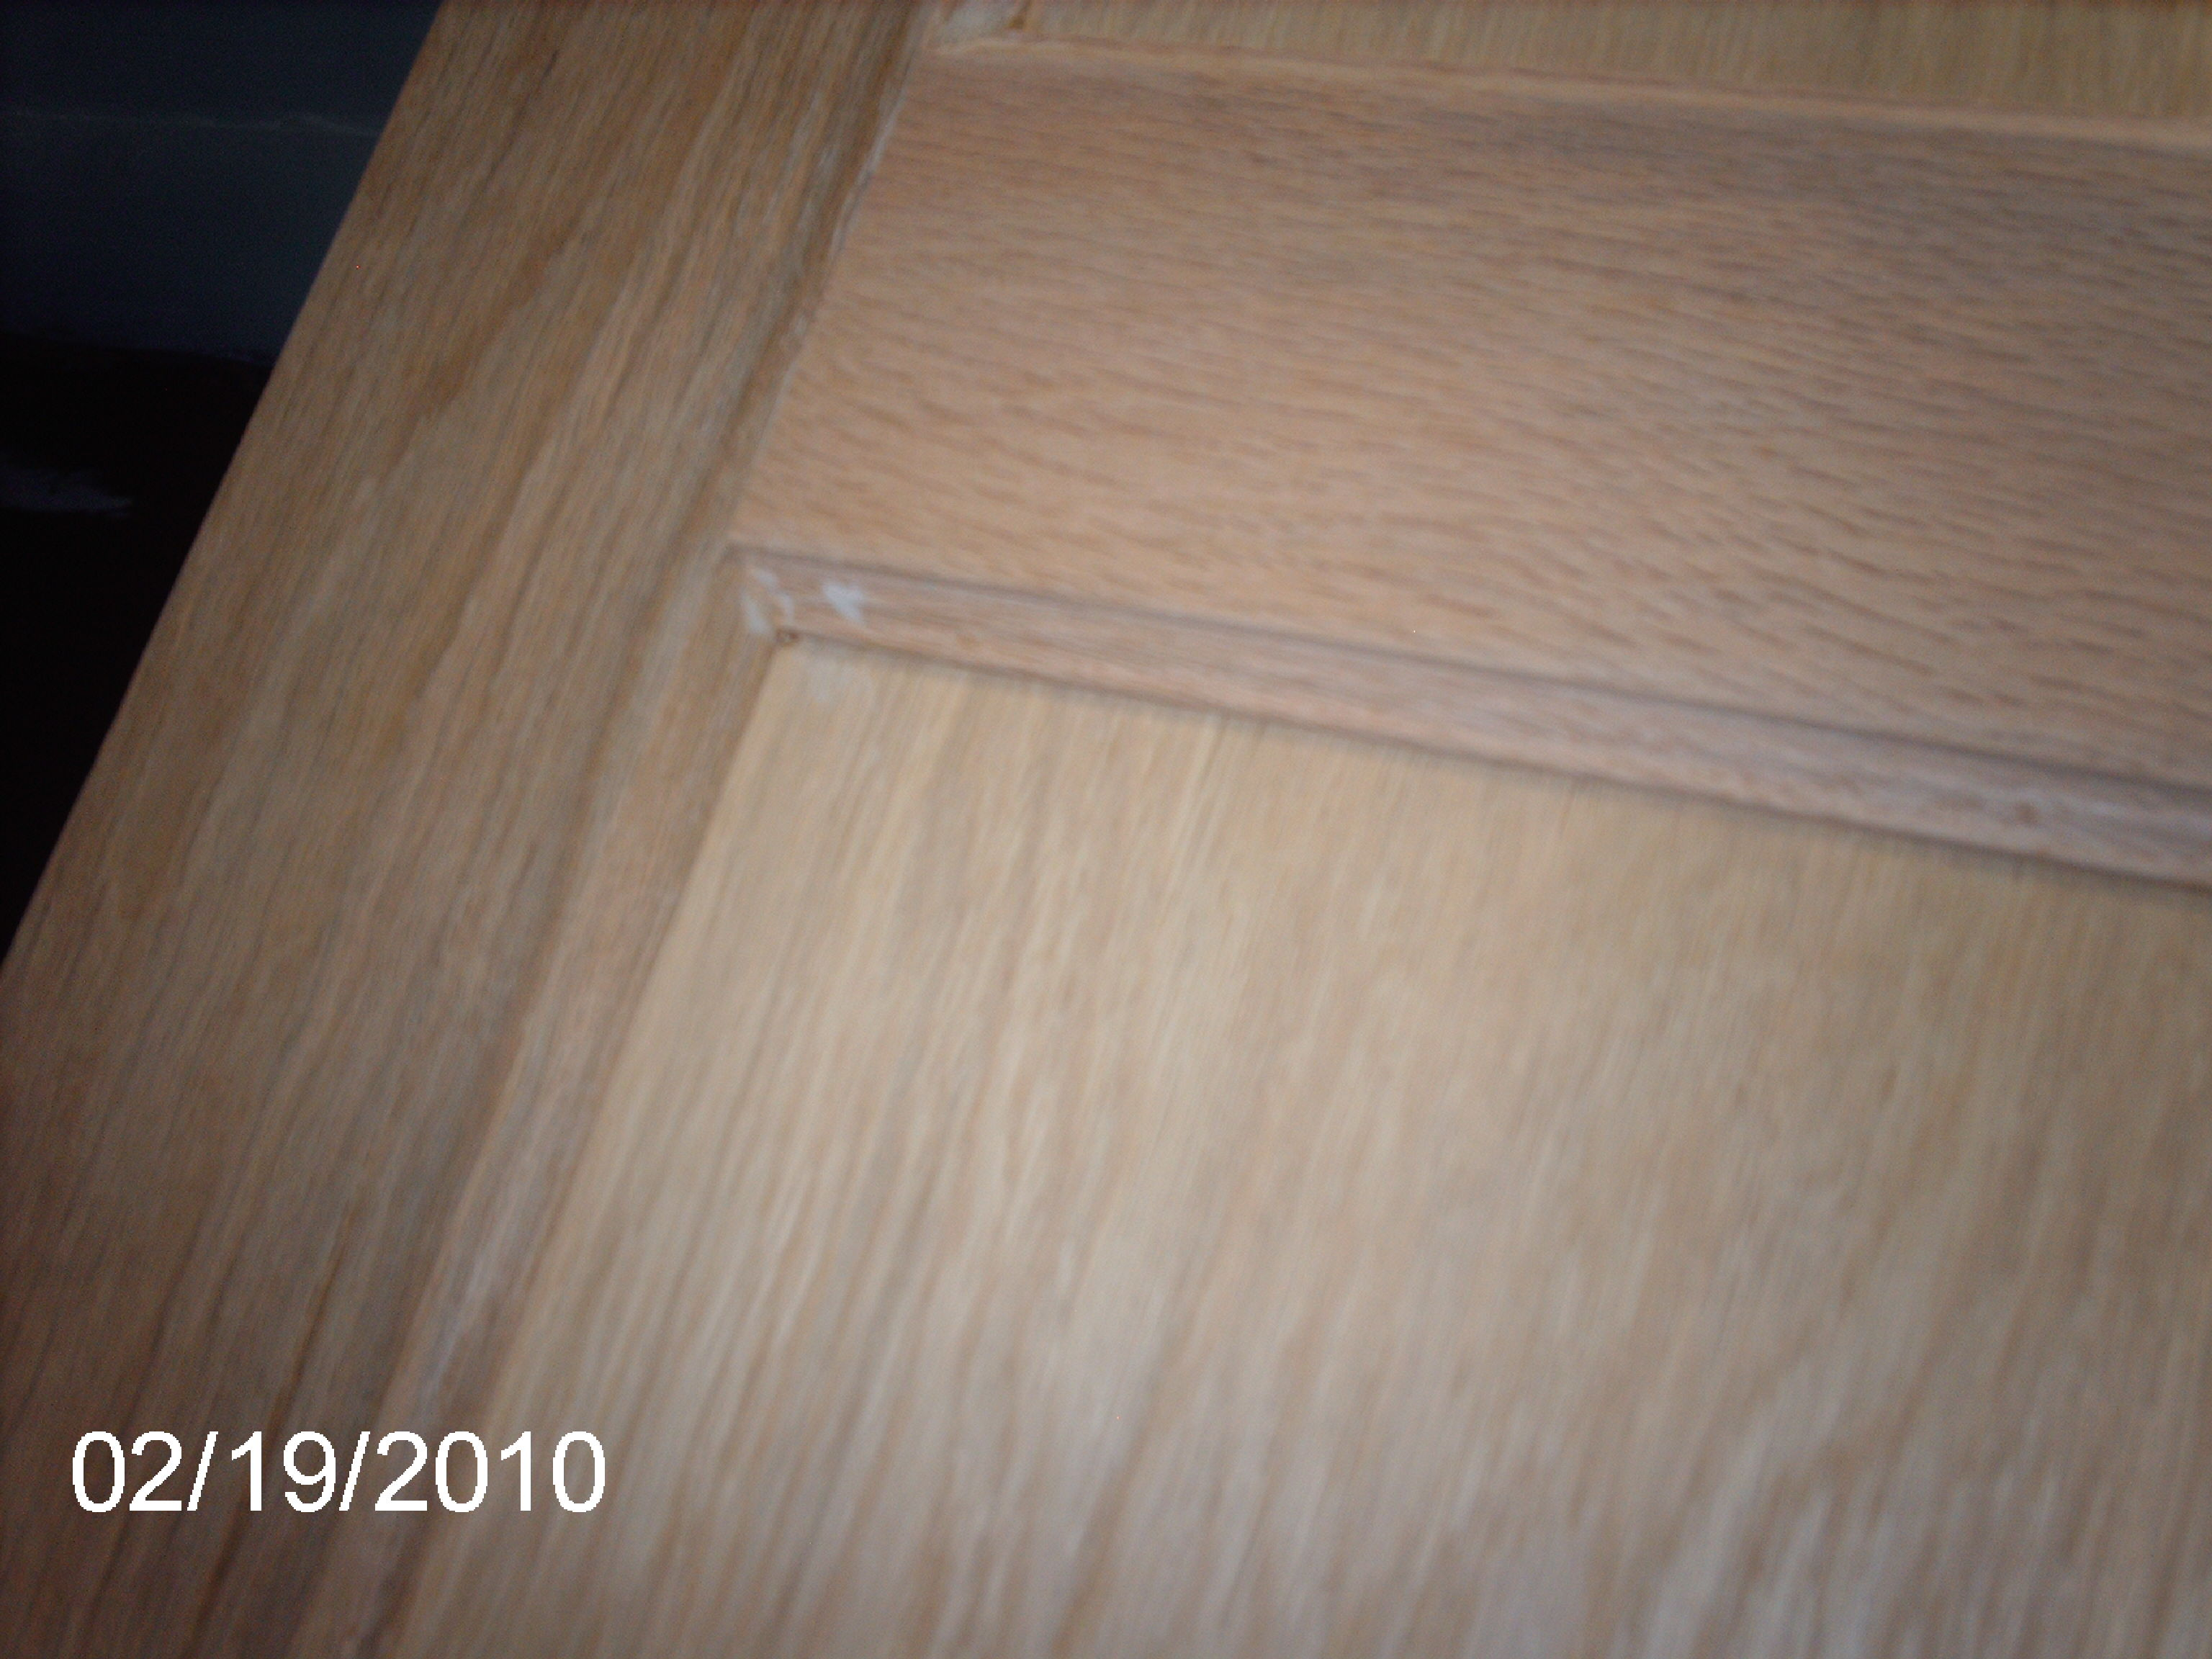 RAIL AND STYLE JOINT-2 - OAK.JPG